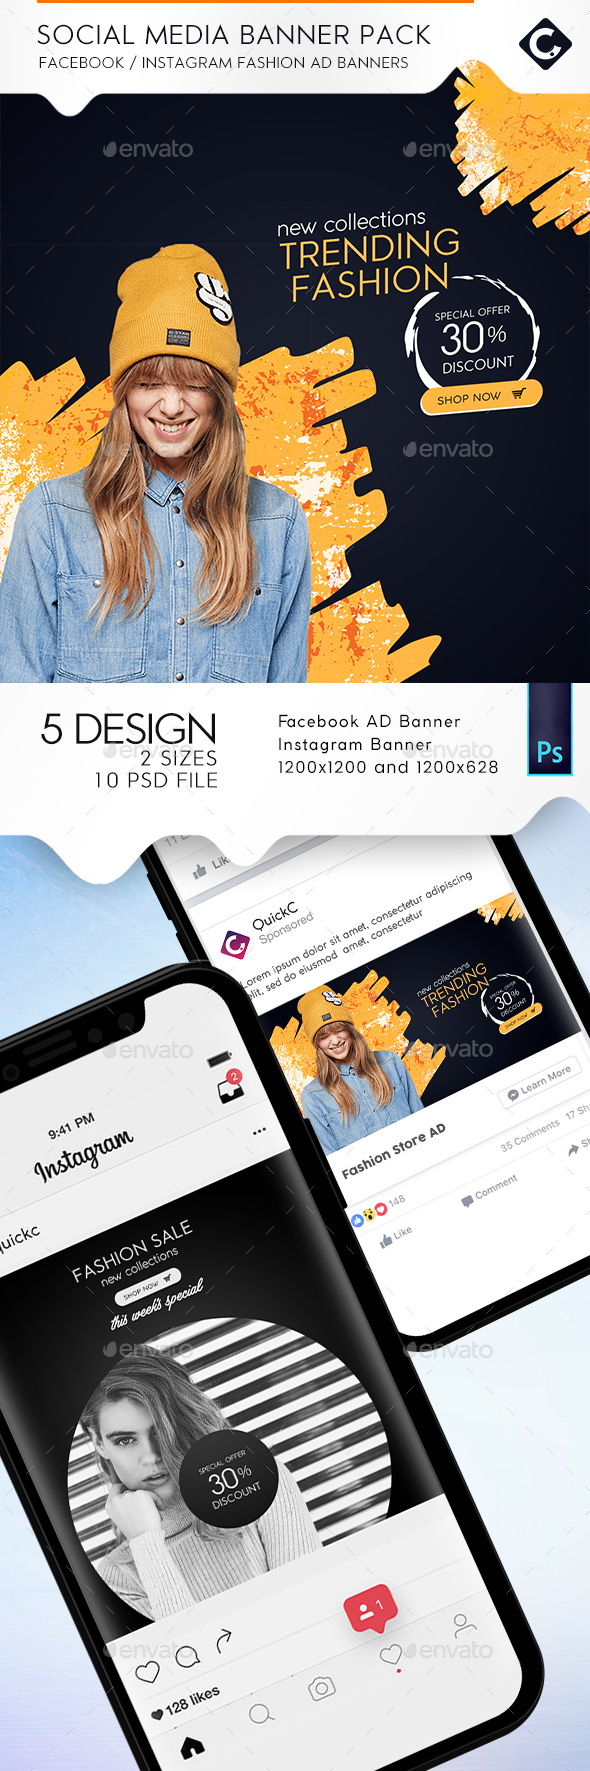 Social Media Fashion Banner Pack - Banners & Ads Web Elements